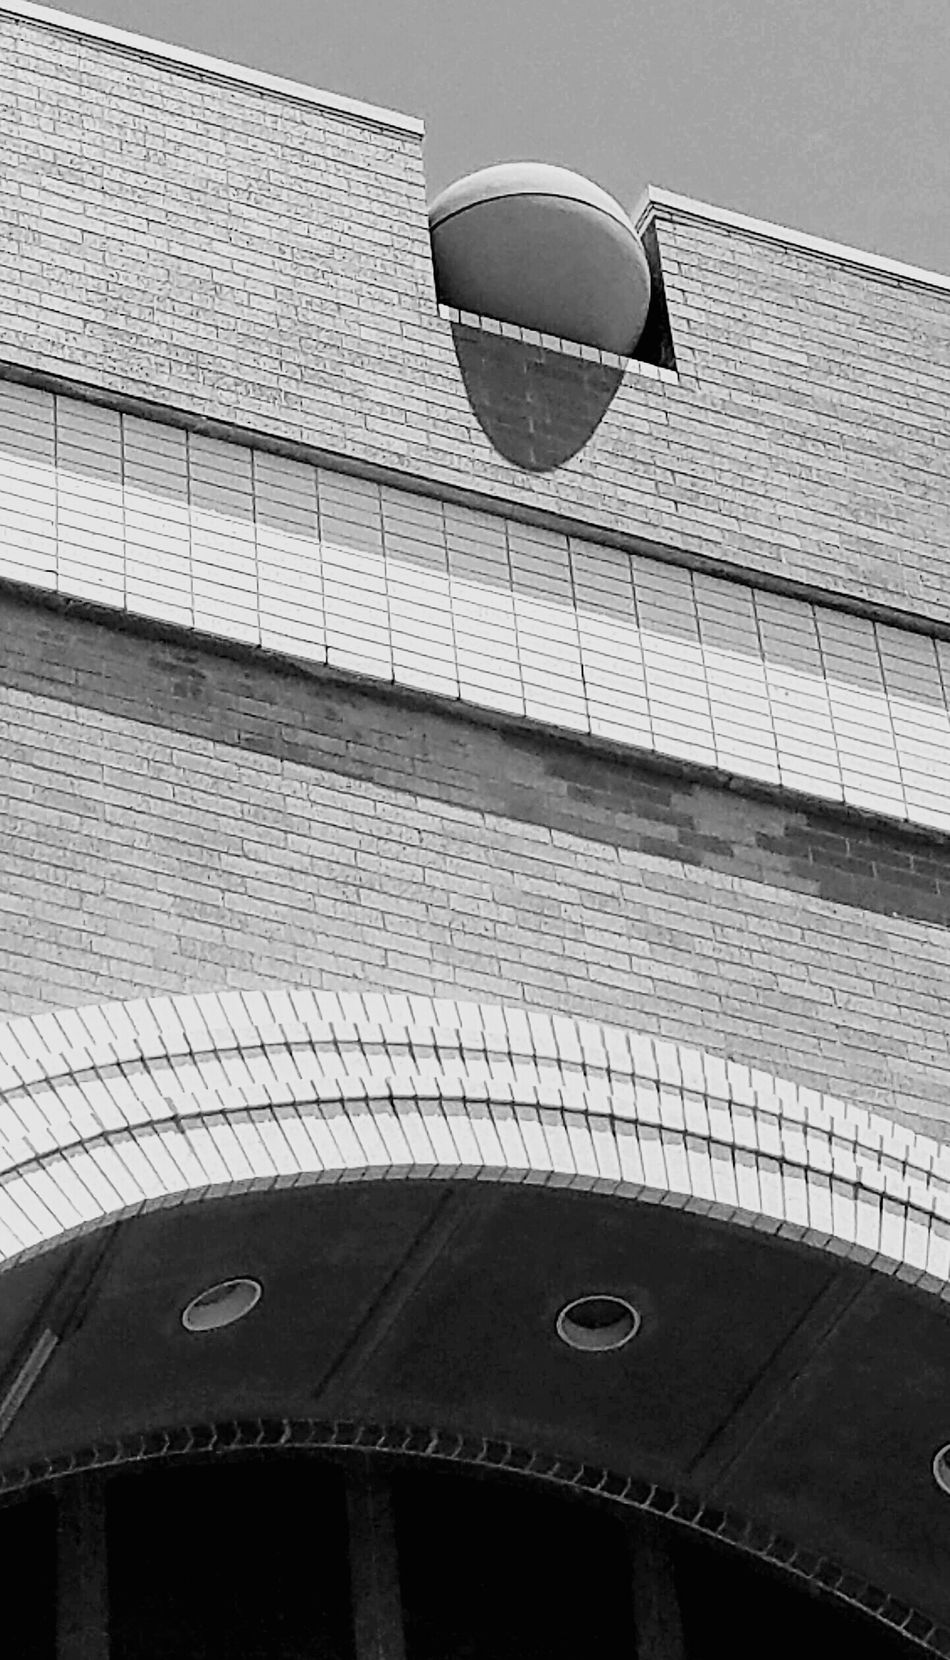 #1 Architecture Architecture_collection Black And White Building Exterior Built Structure Day Low Angle View MUR B&W No People Outdoors Sky Welcome To Black